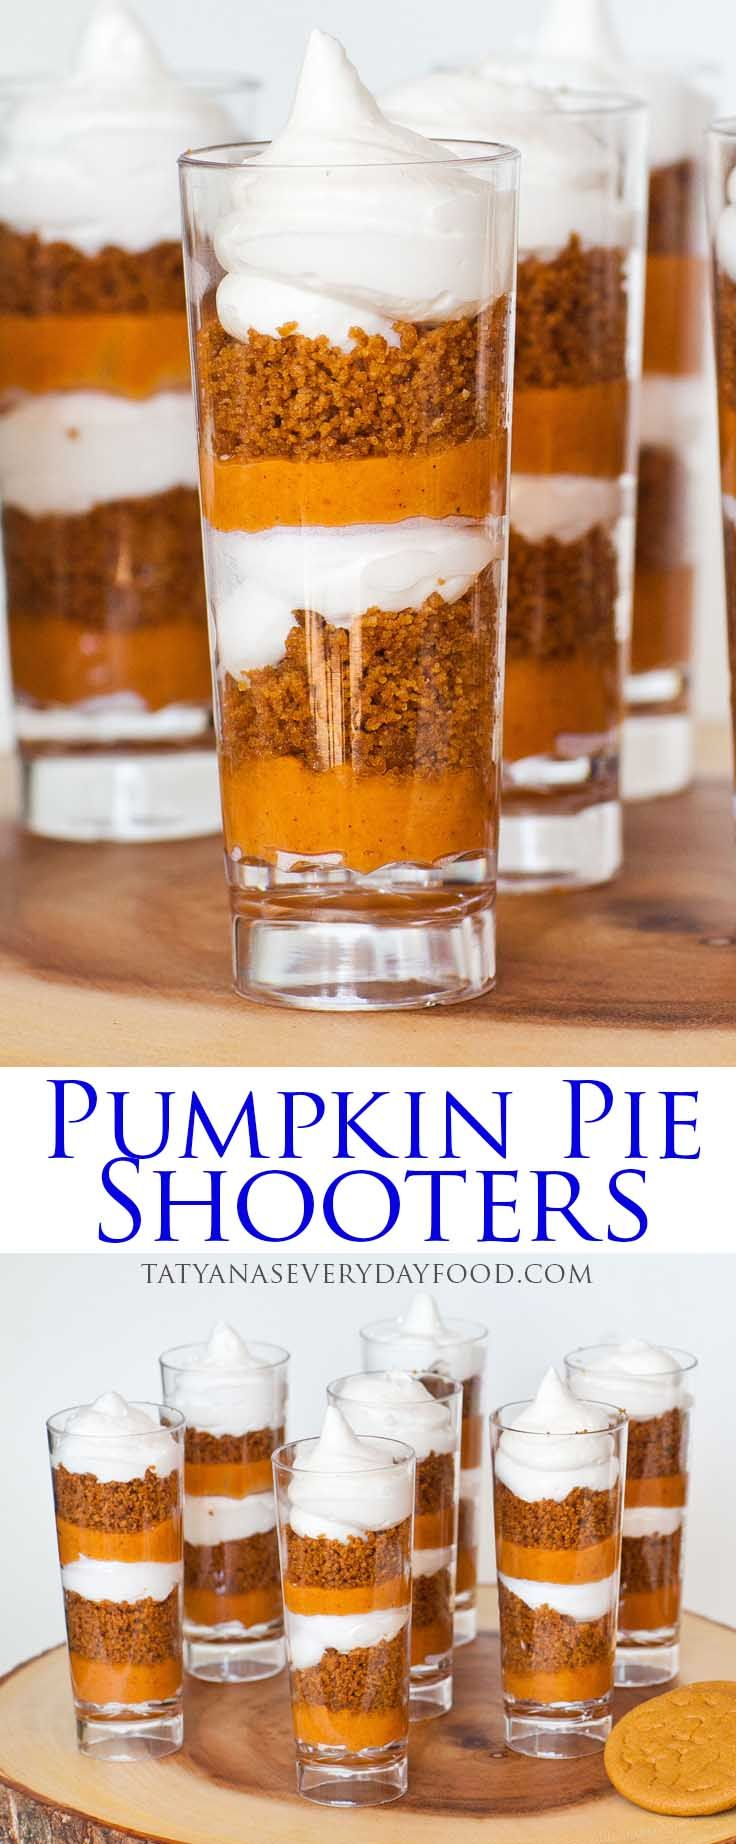 These no-bake pumpkin pie shooters are the perfect dessert for any fall festival, holiday or gathering! This dessert is made with three layers of yumminess: ginger snap cookie crumbs, vanilla marshmallow meringue and of course, no-bake pumpkin pie filling. These shooters are easy to serve at a party and will disappear in minutes! Watch my […]